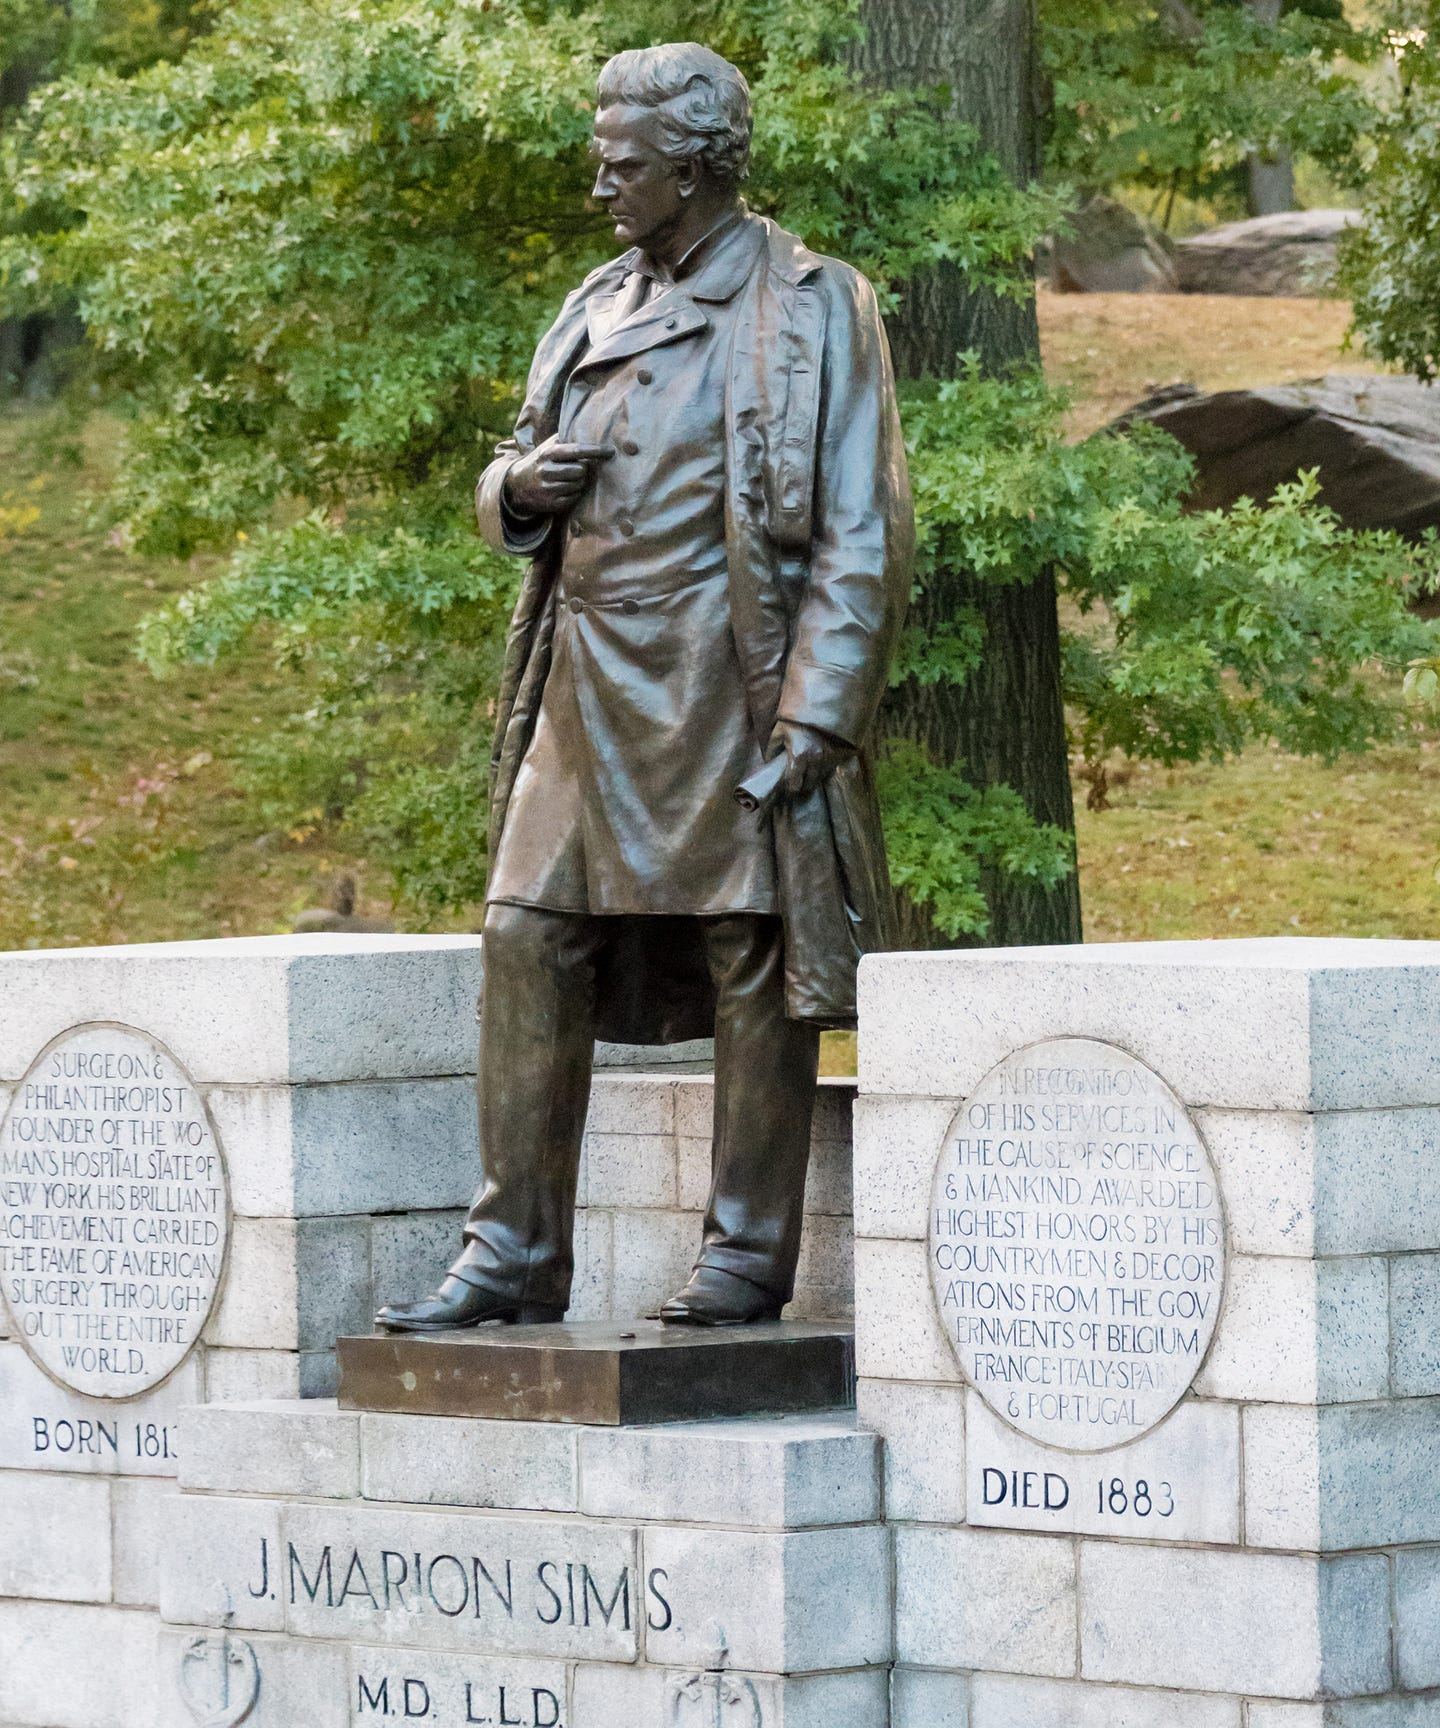 J. Marion Sims' Statue May Be Gone In Central Park, But His Racist Legacy Remains